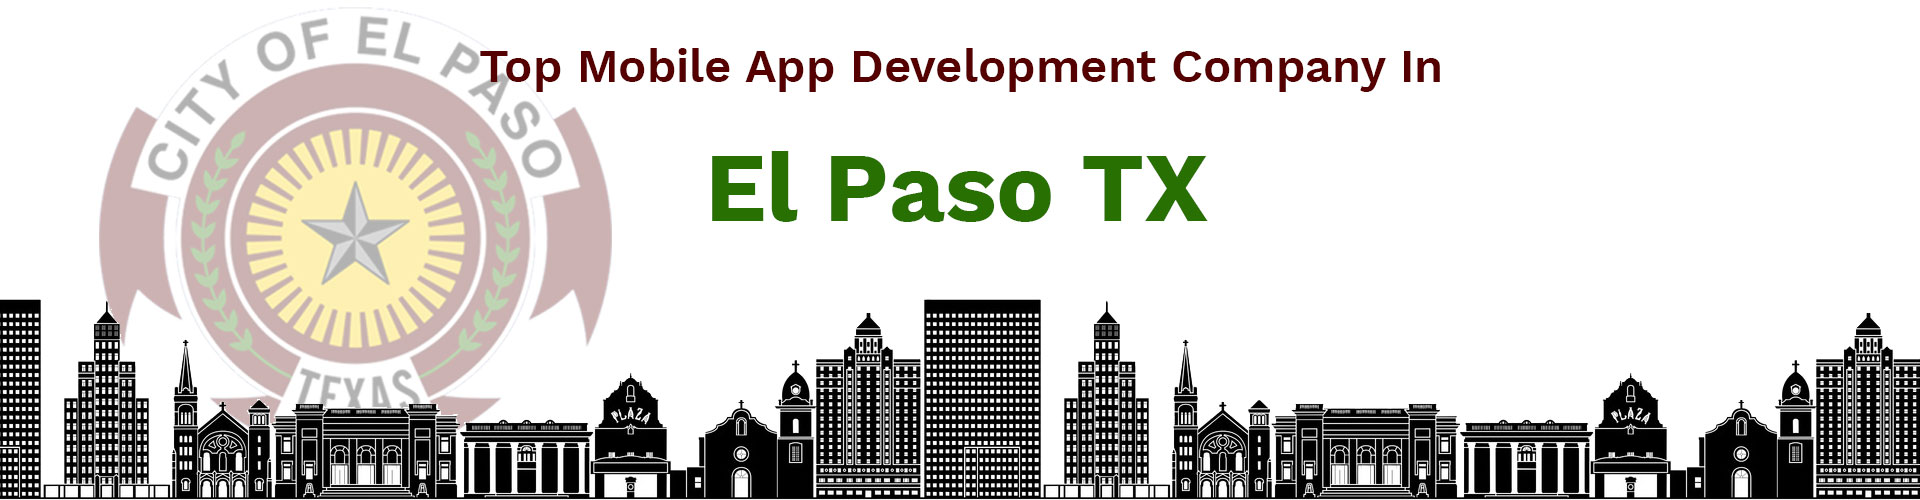 app developers el paso